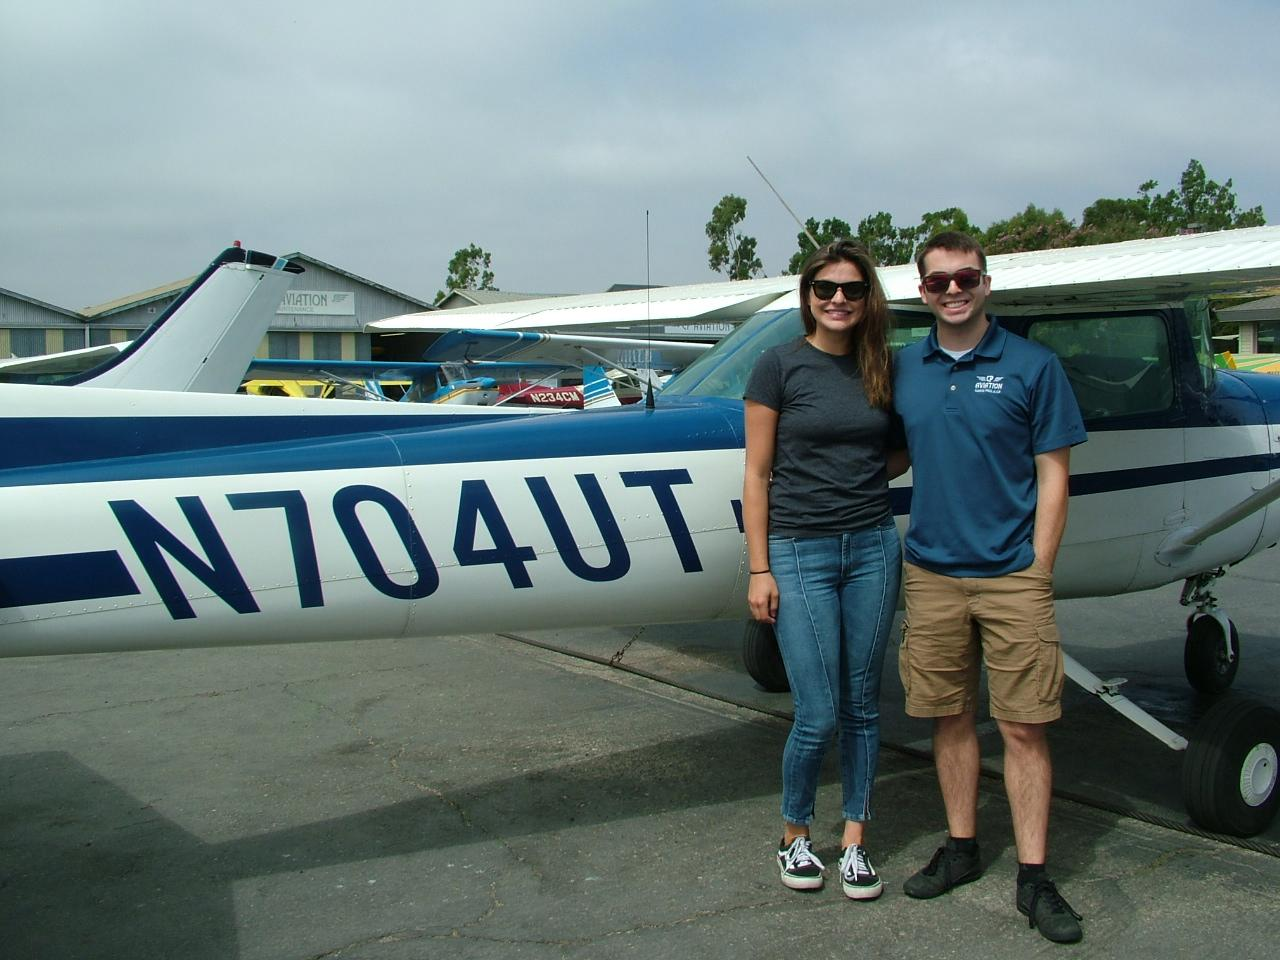 First Solo - Lauren Shoemate